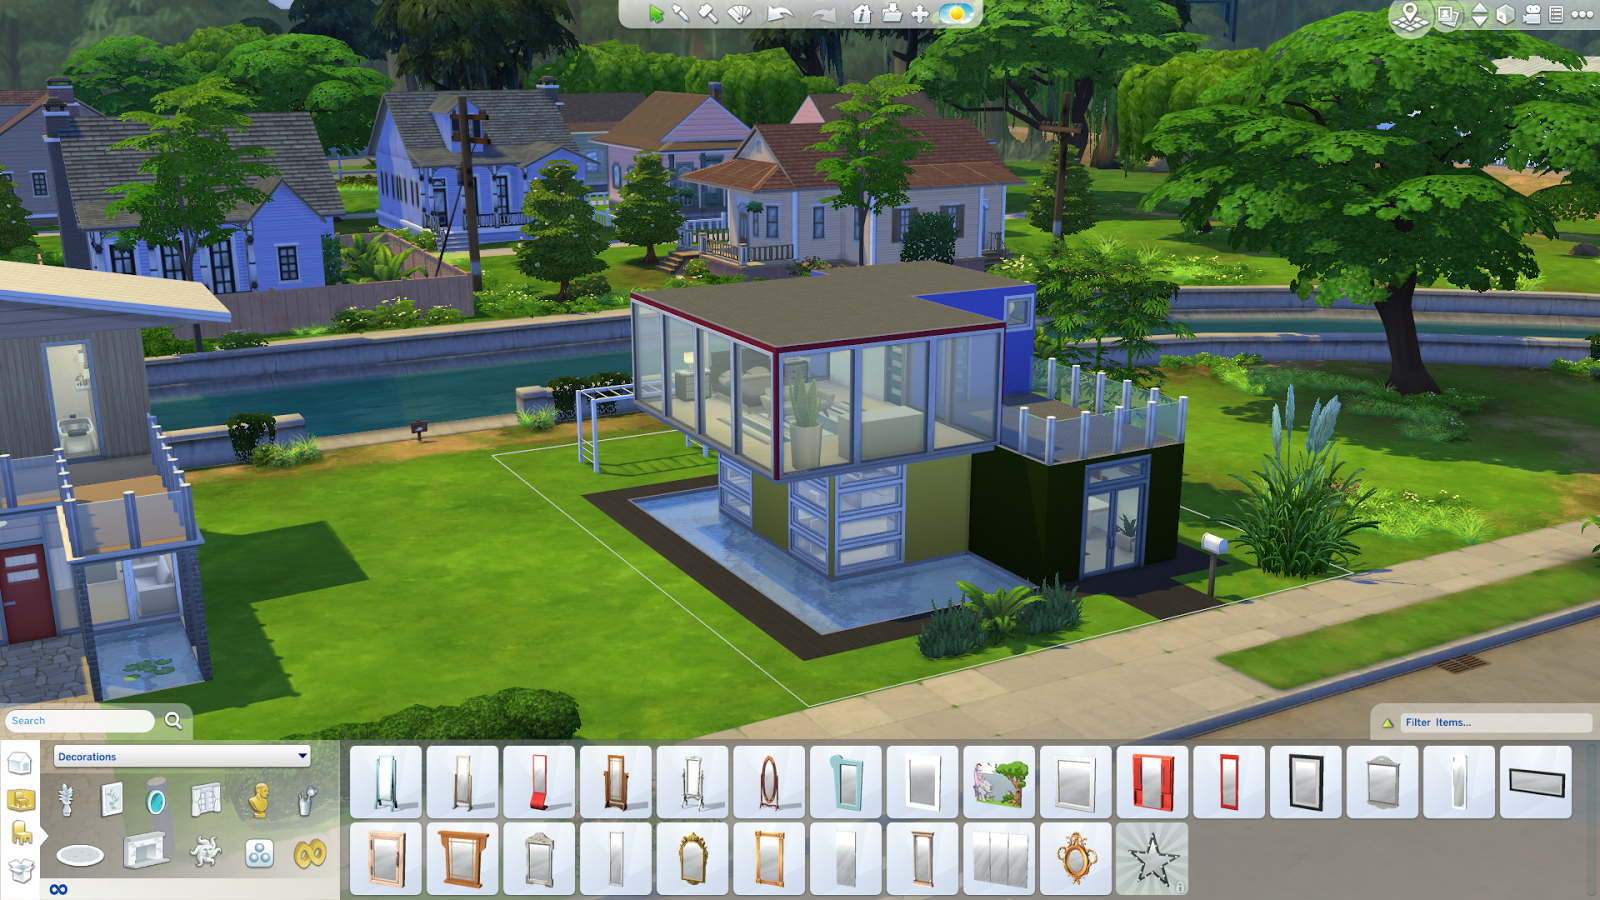 De sims 4 nieuwe screens sims nieuws for Best house designs sims 4